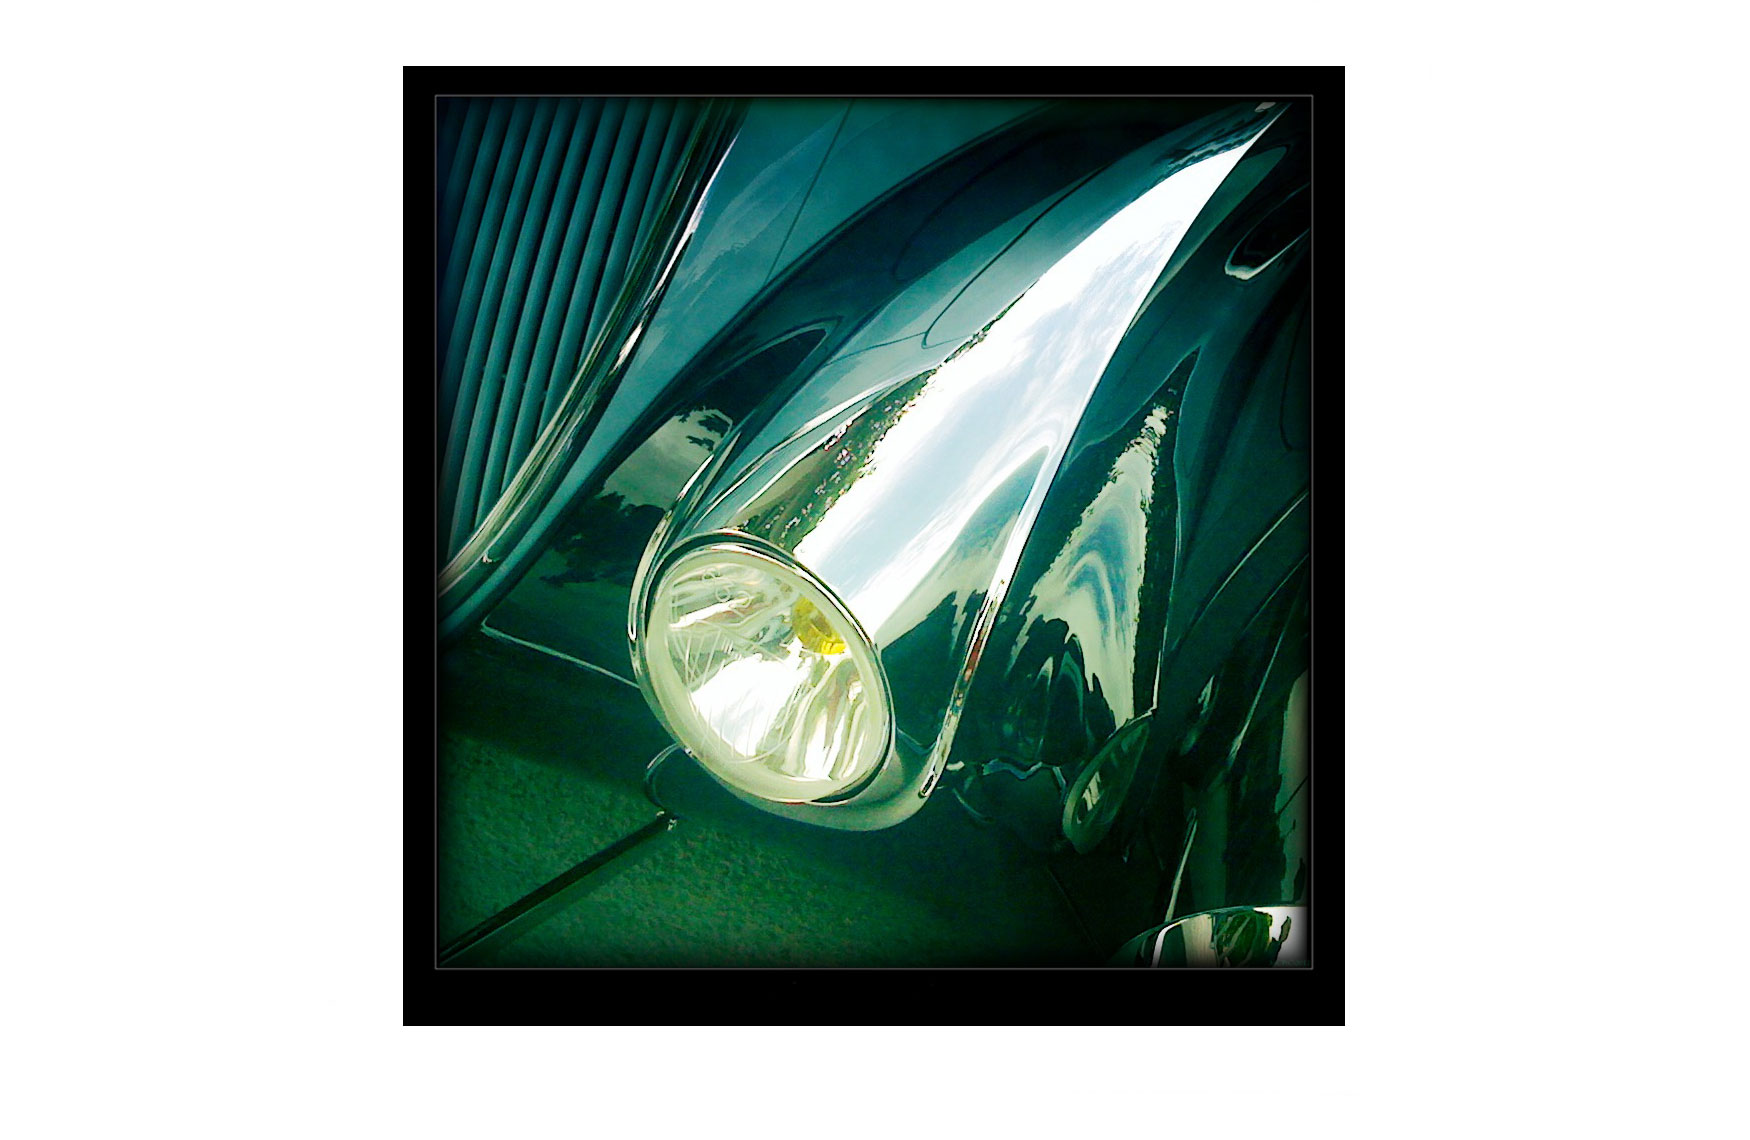 MCraft_Delahaye_Headlamp